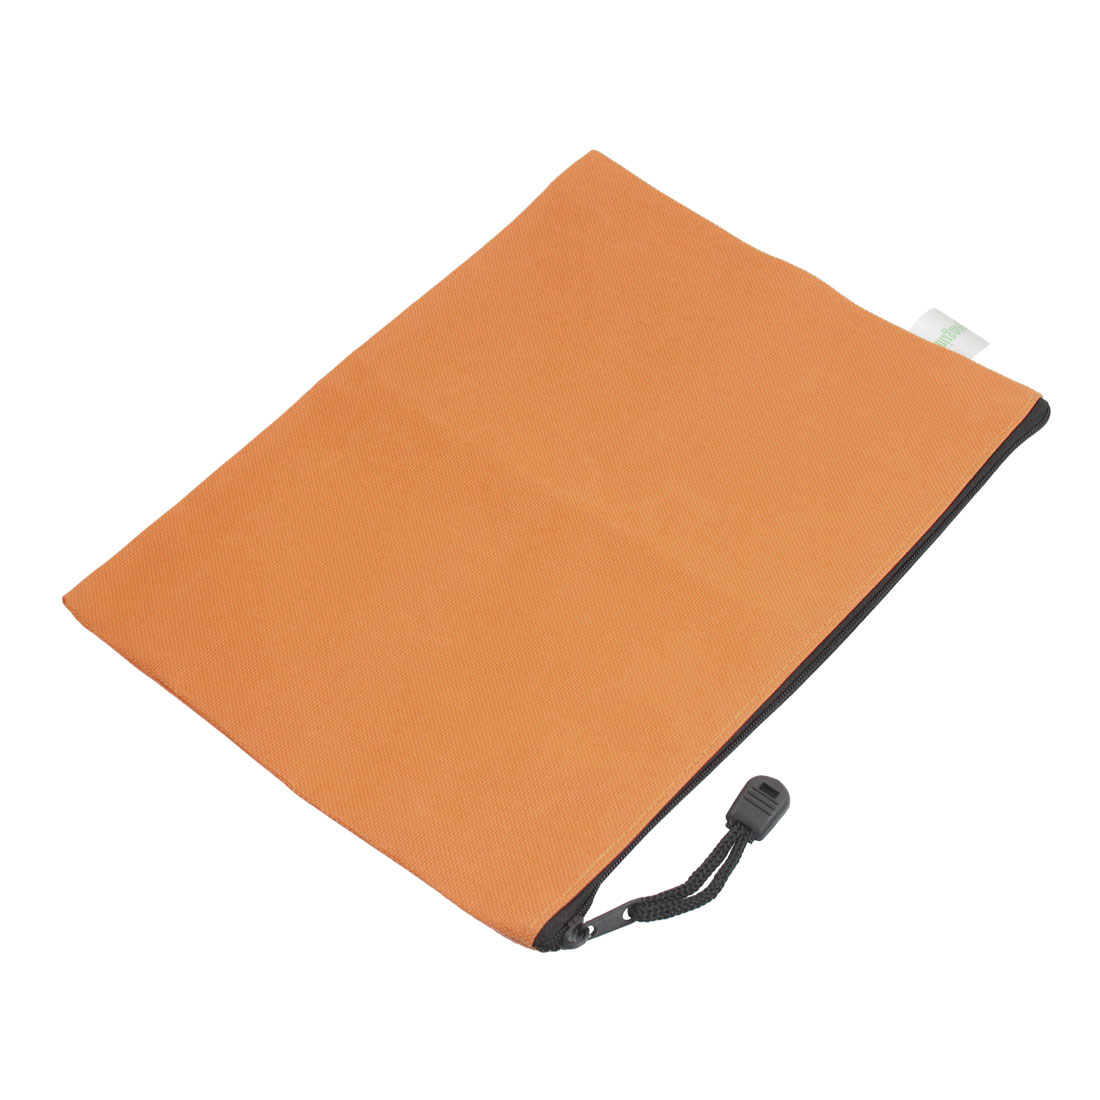 Stationery Pens Paper File Document Zip Up Bag Orange for A5 Paper